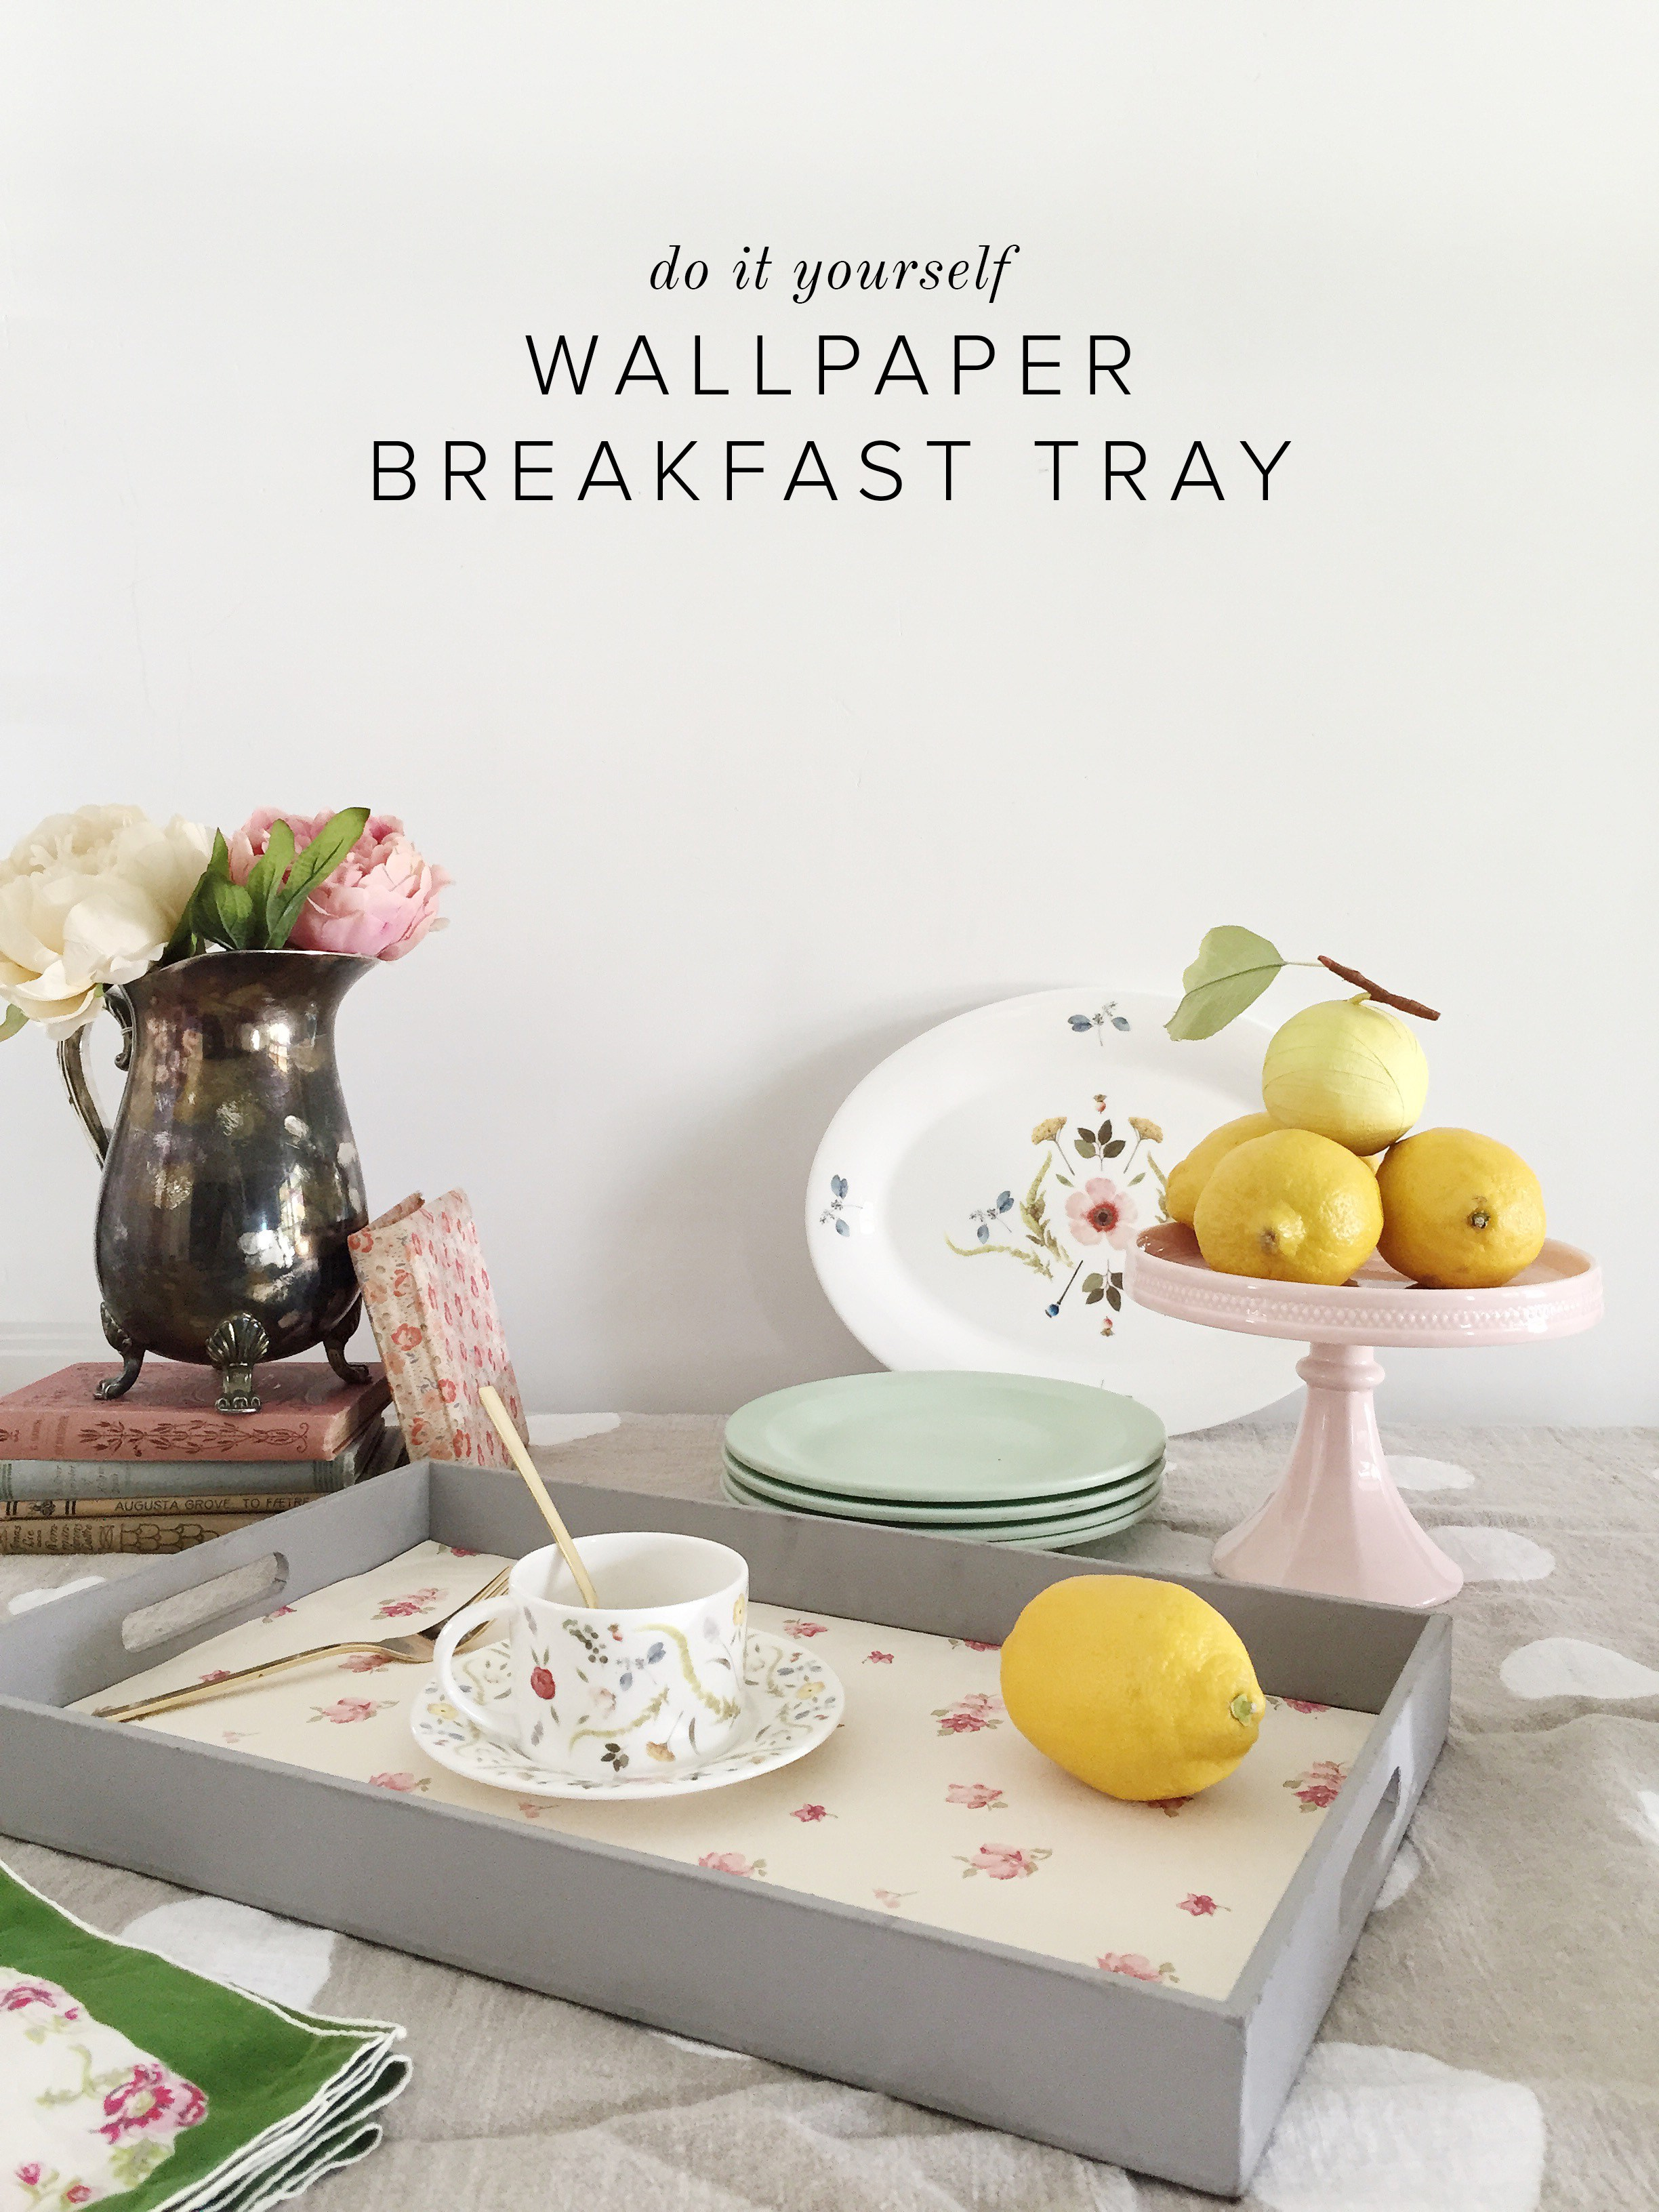 DIY Wallpaper breakfast tray 2448x3264